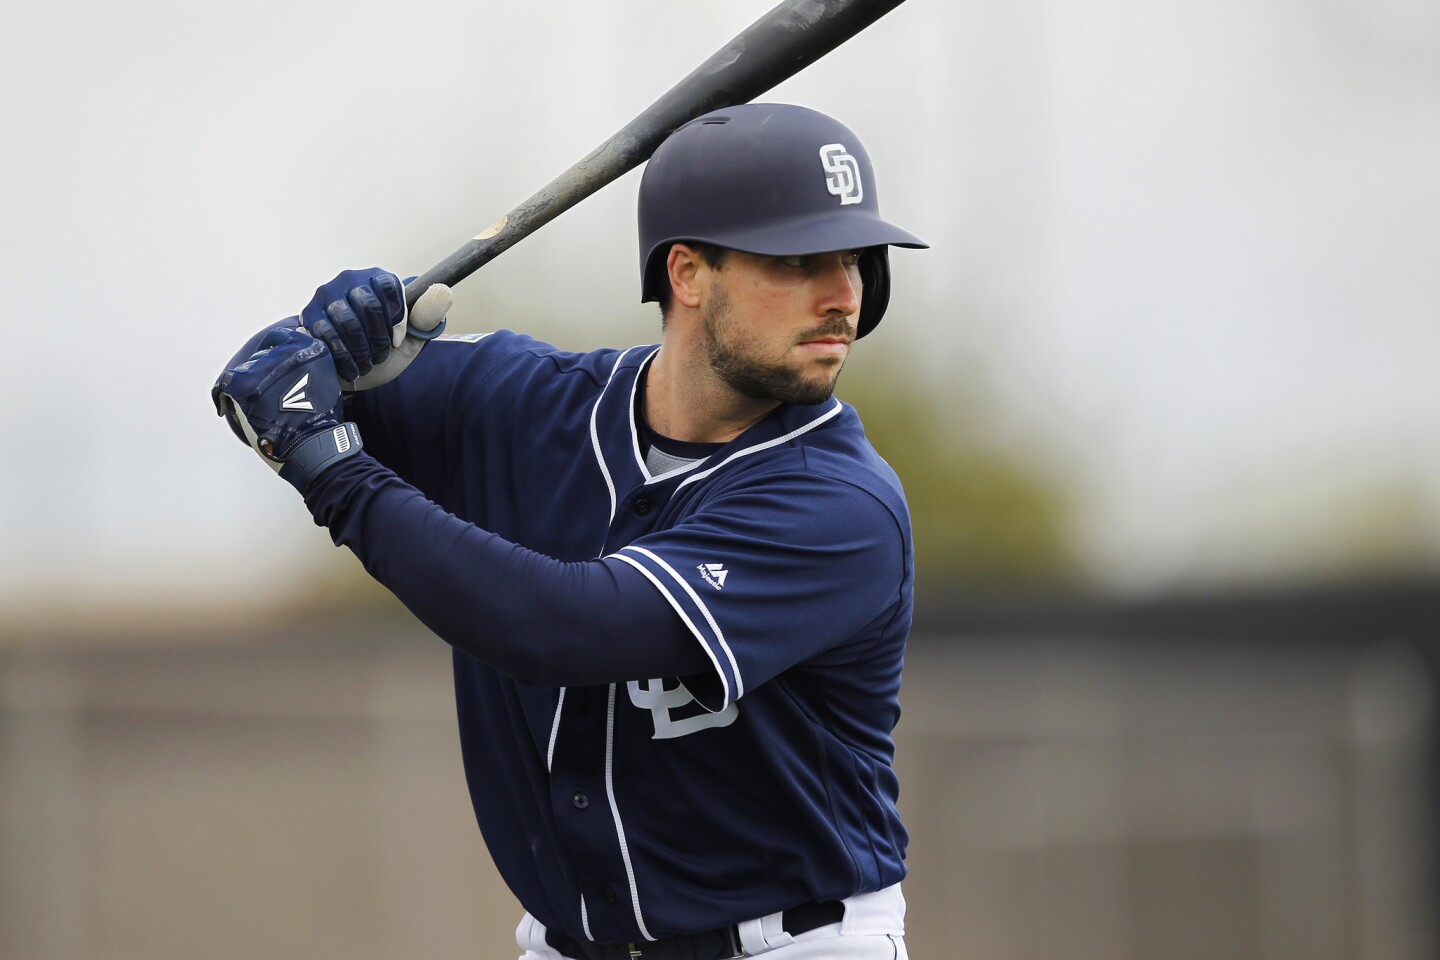 San Diego Padres Austin Hedges bats during a spring training practice in Peoria on Feb. 19, 2018. (Photo by K.C. Alfred/ San Diego Union -Tribune)